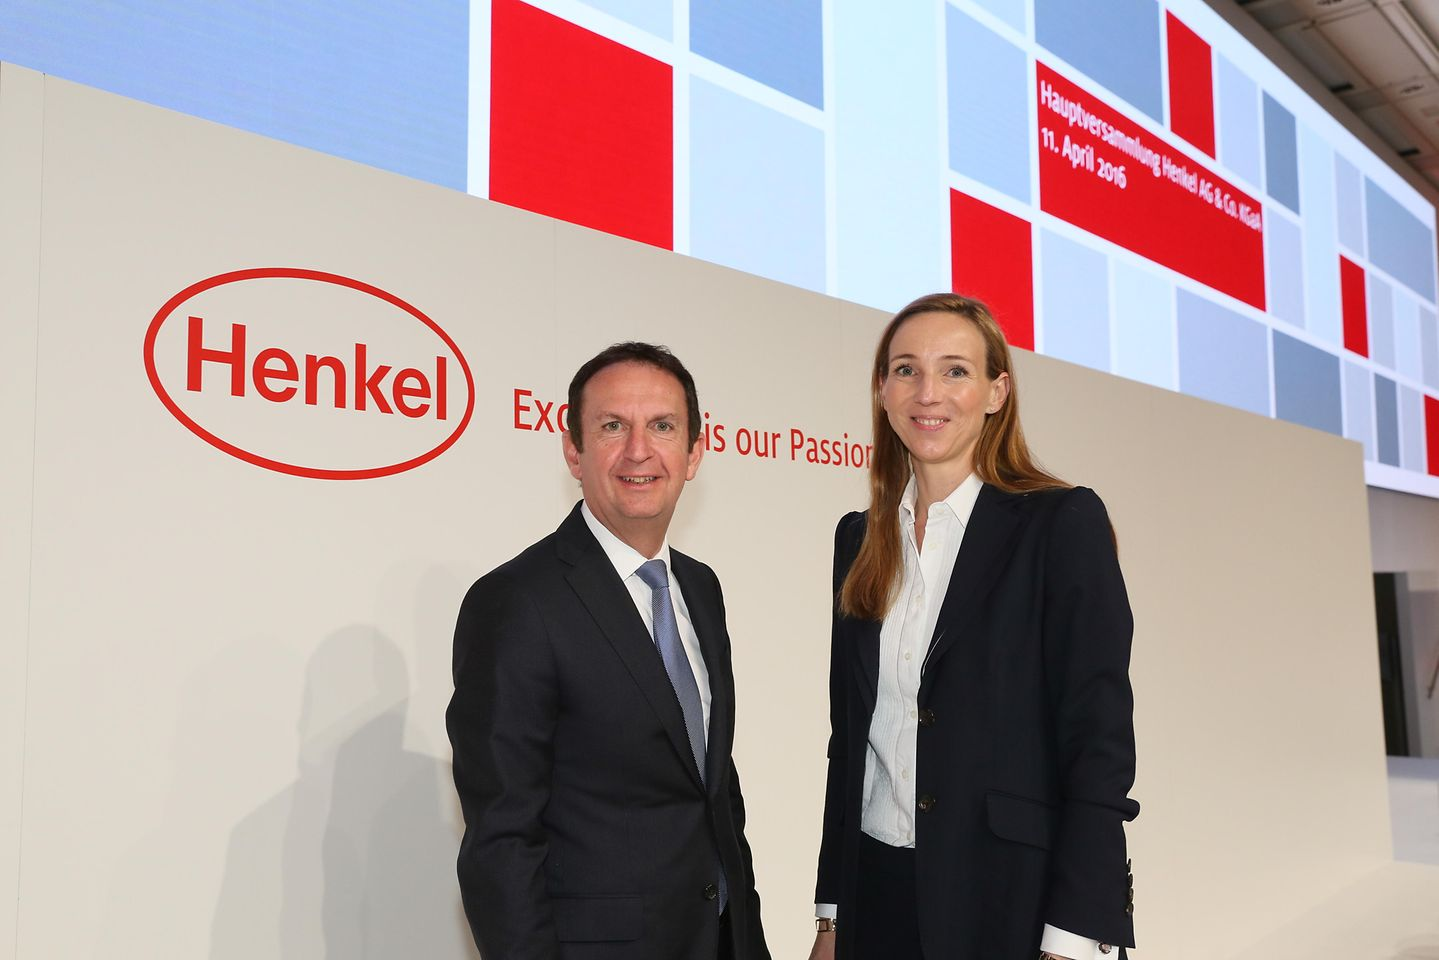 CEO Hans Van Bylen and Dr. Simone Bagel-Trah, Chairwoman of Henkel's Supervisory Board